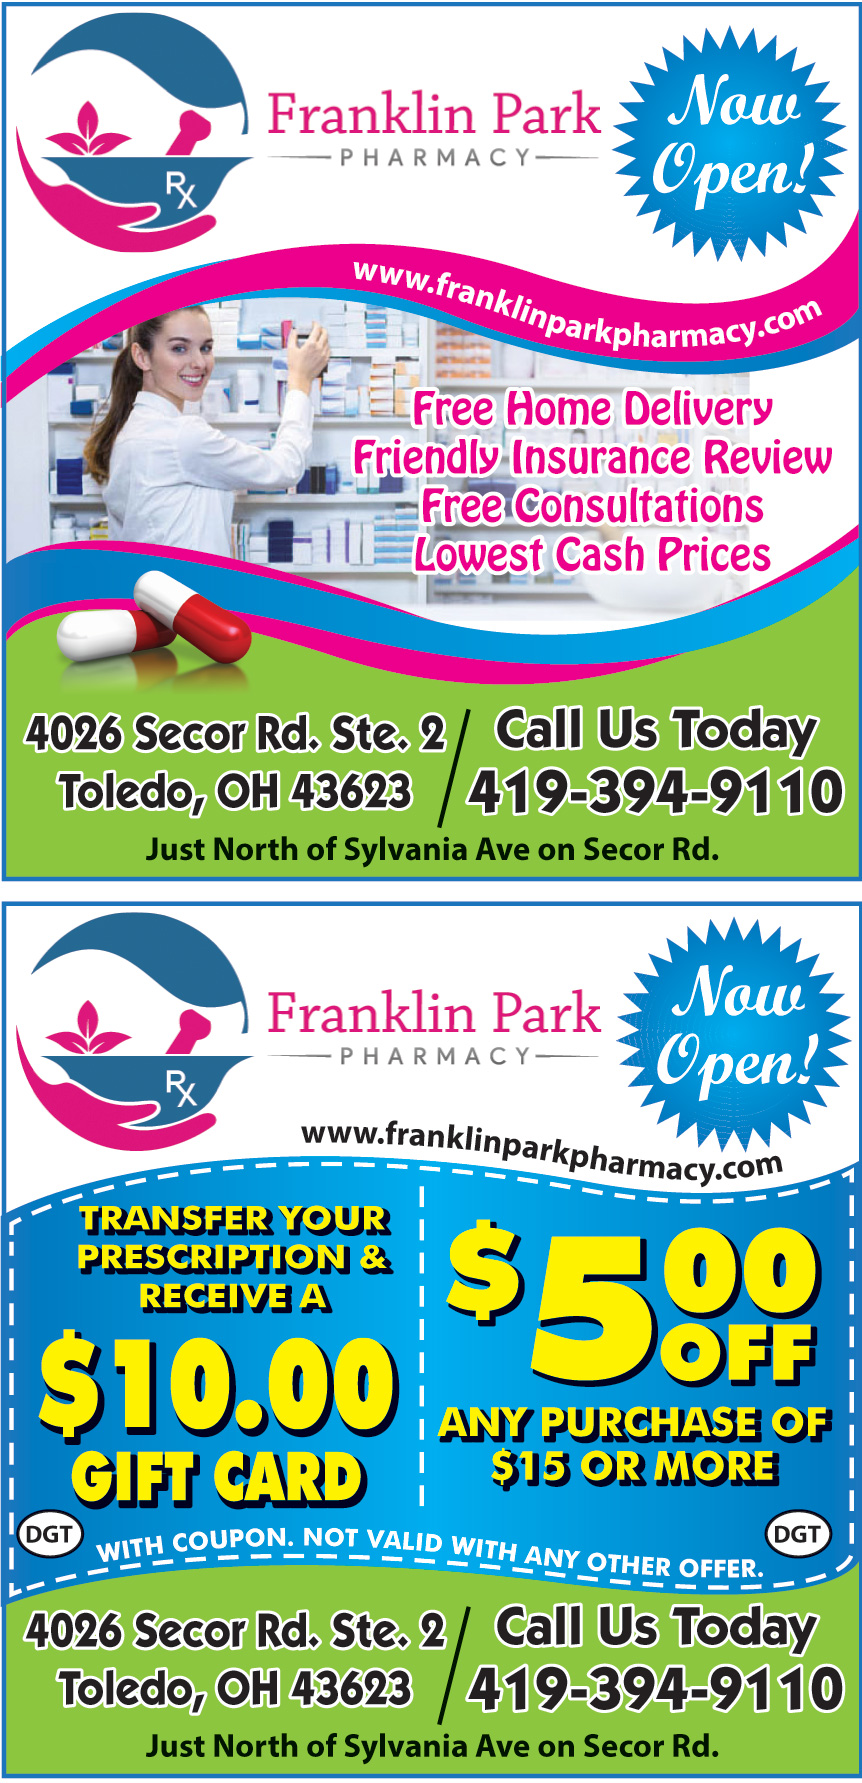 FRANKLIN PARK PHARMACY